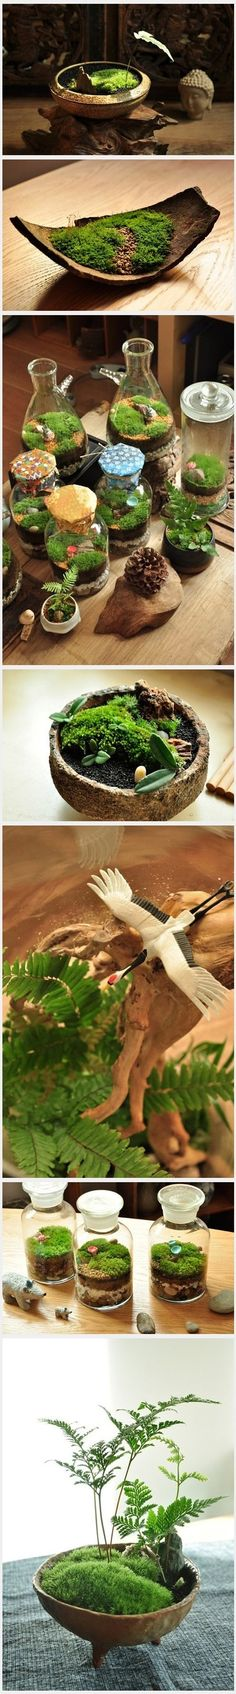 Moss gardens, for Kensie to make a fairy garden....so cute.: